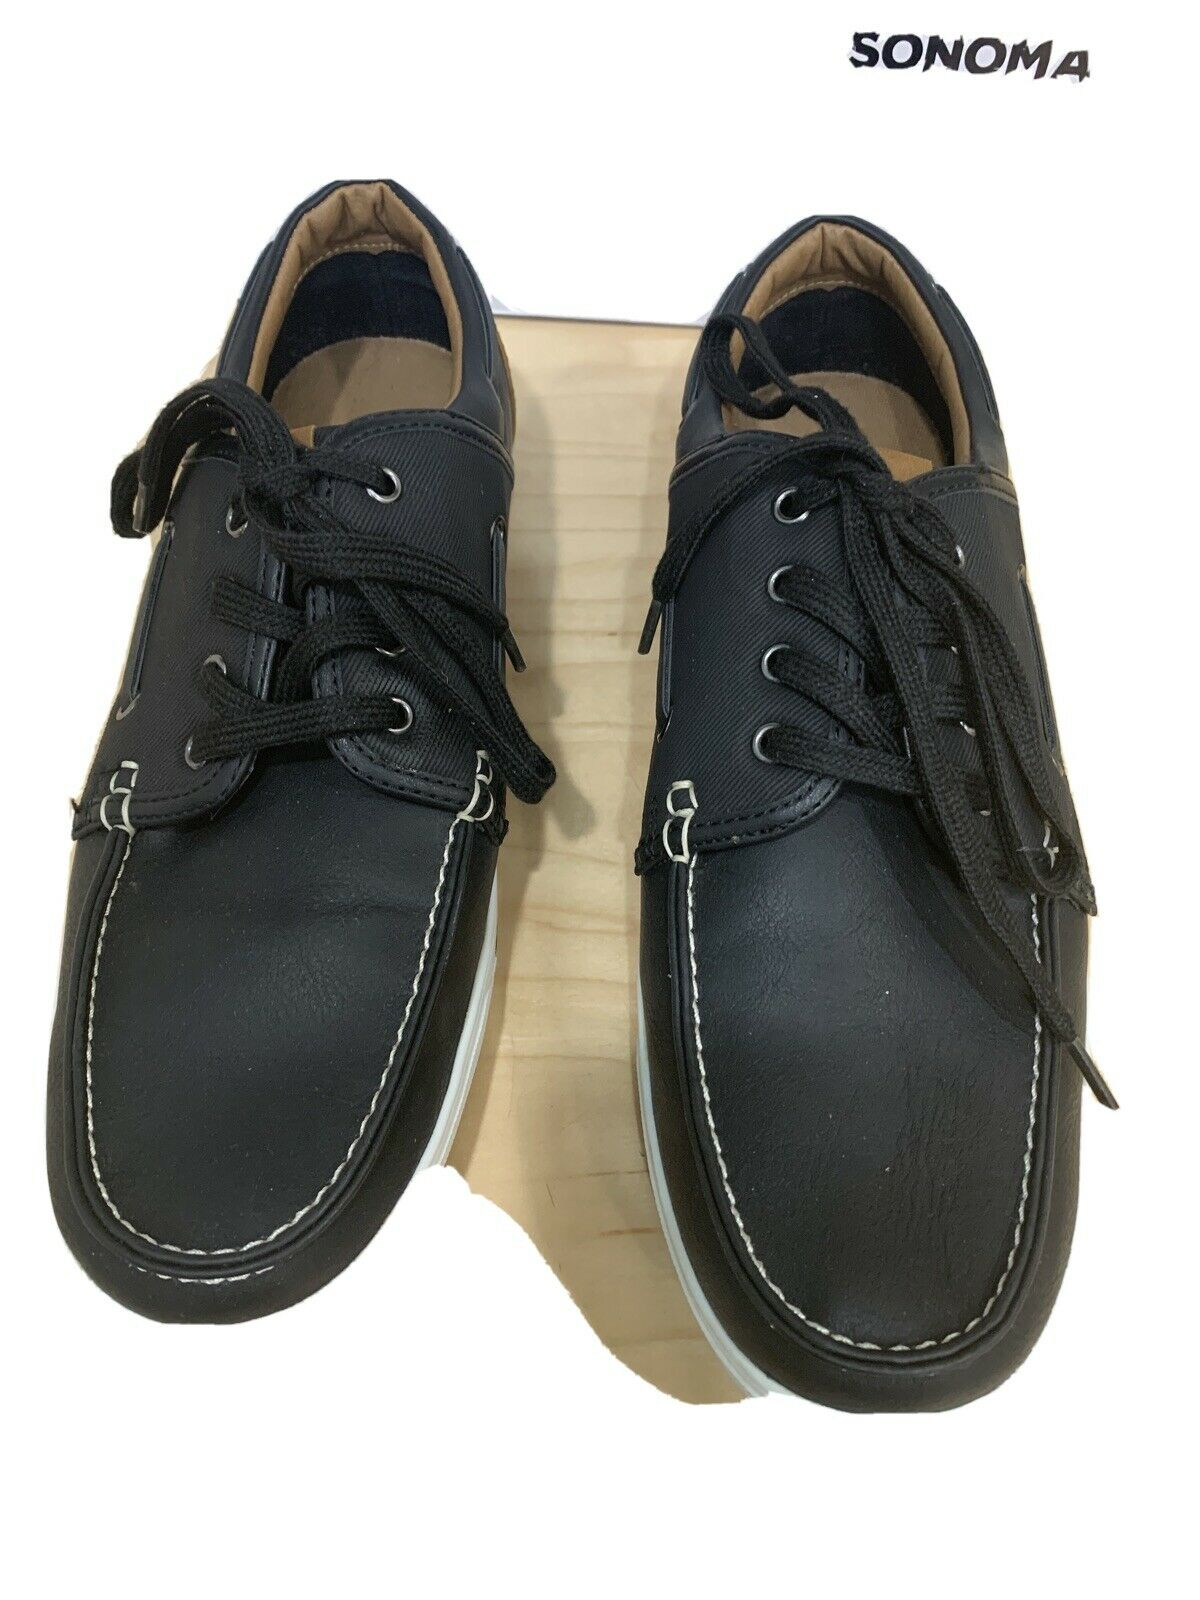 Sonoma Snroyceblack Sockless Style Men's Casual Wear Shoes Size 10 Lightly used